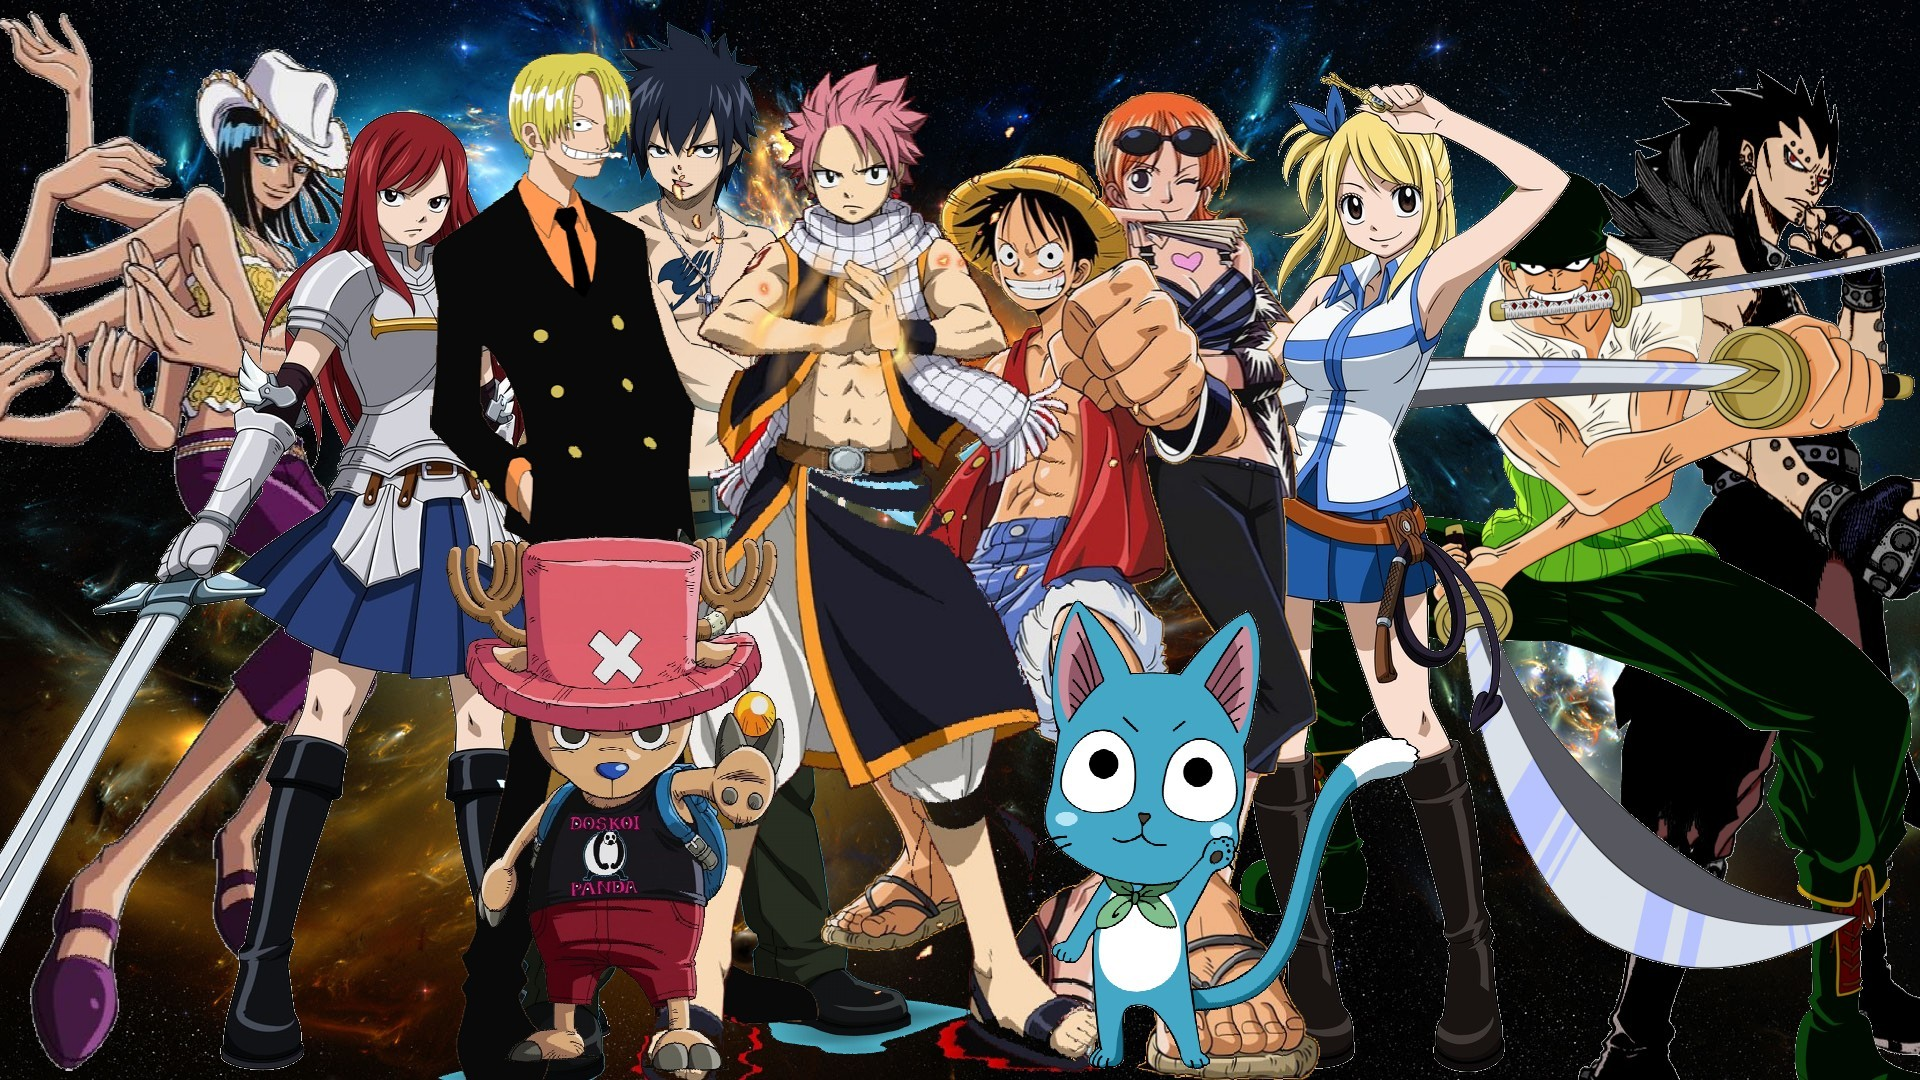 Fairy Tail Wallpapers HD for PC or Mobile Page of Anime 1920x1080